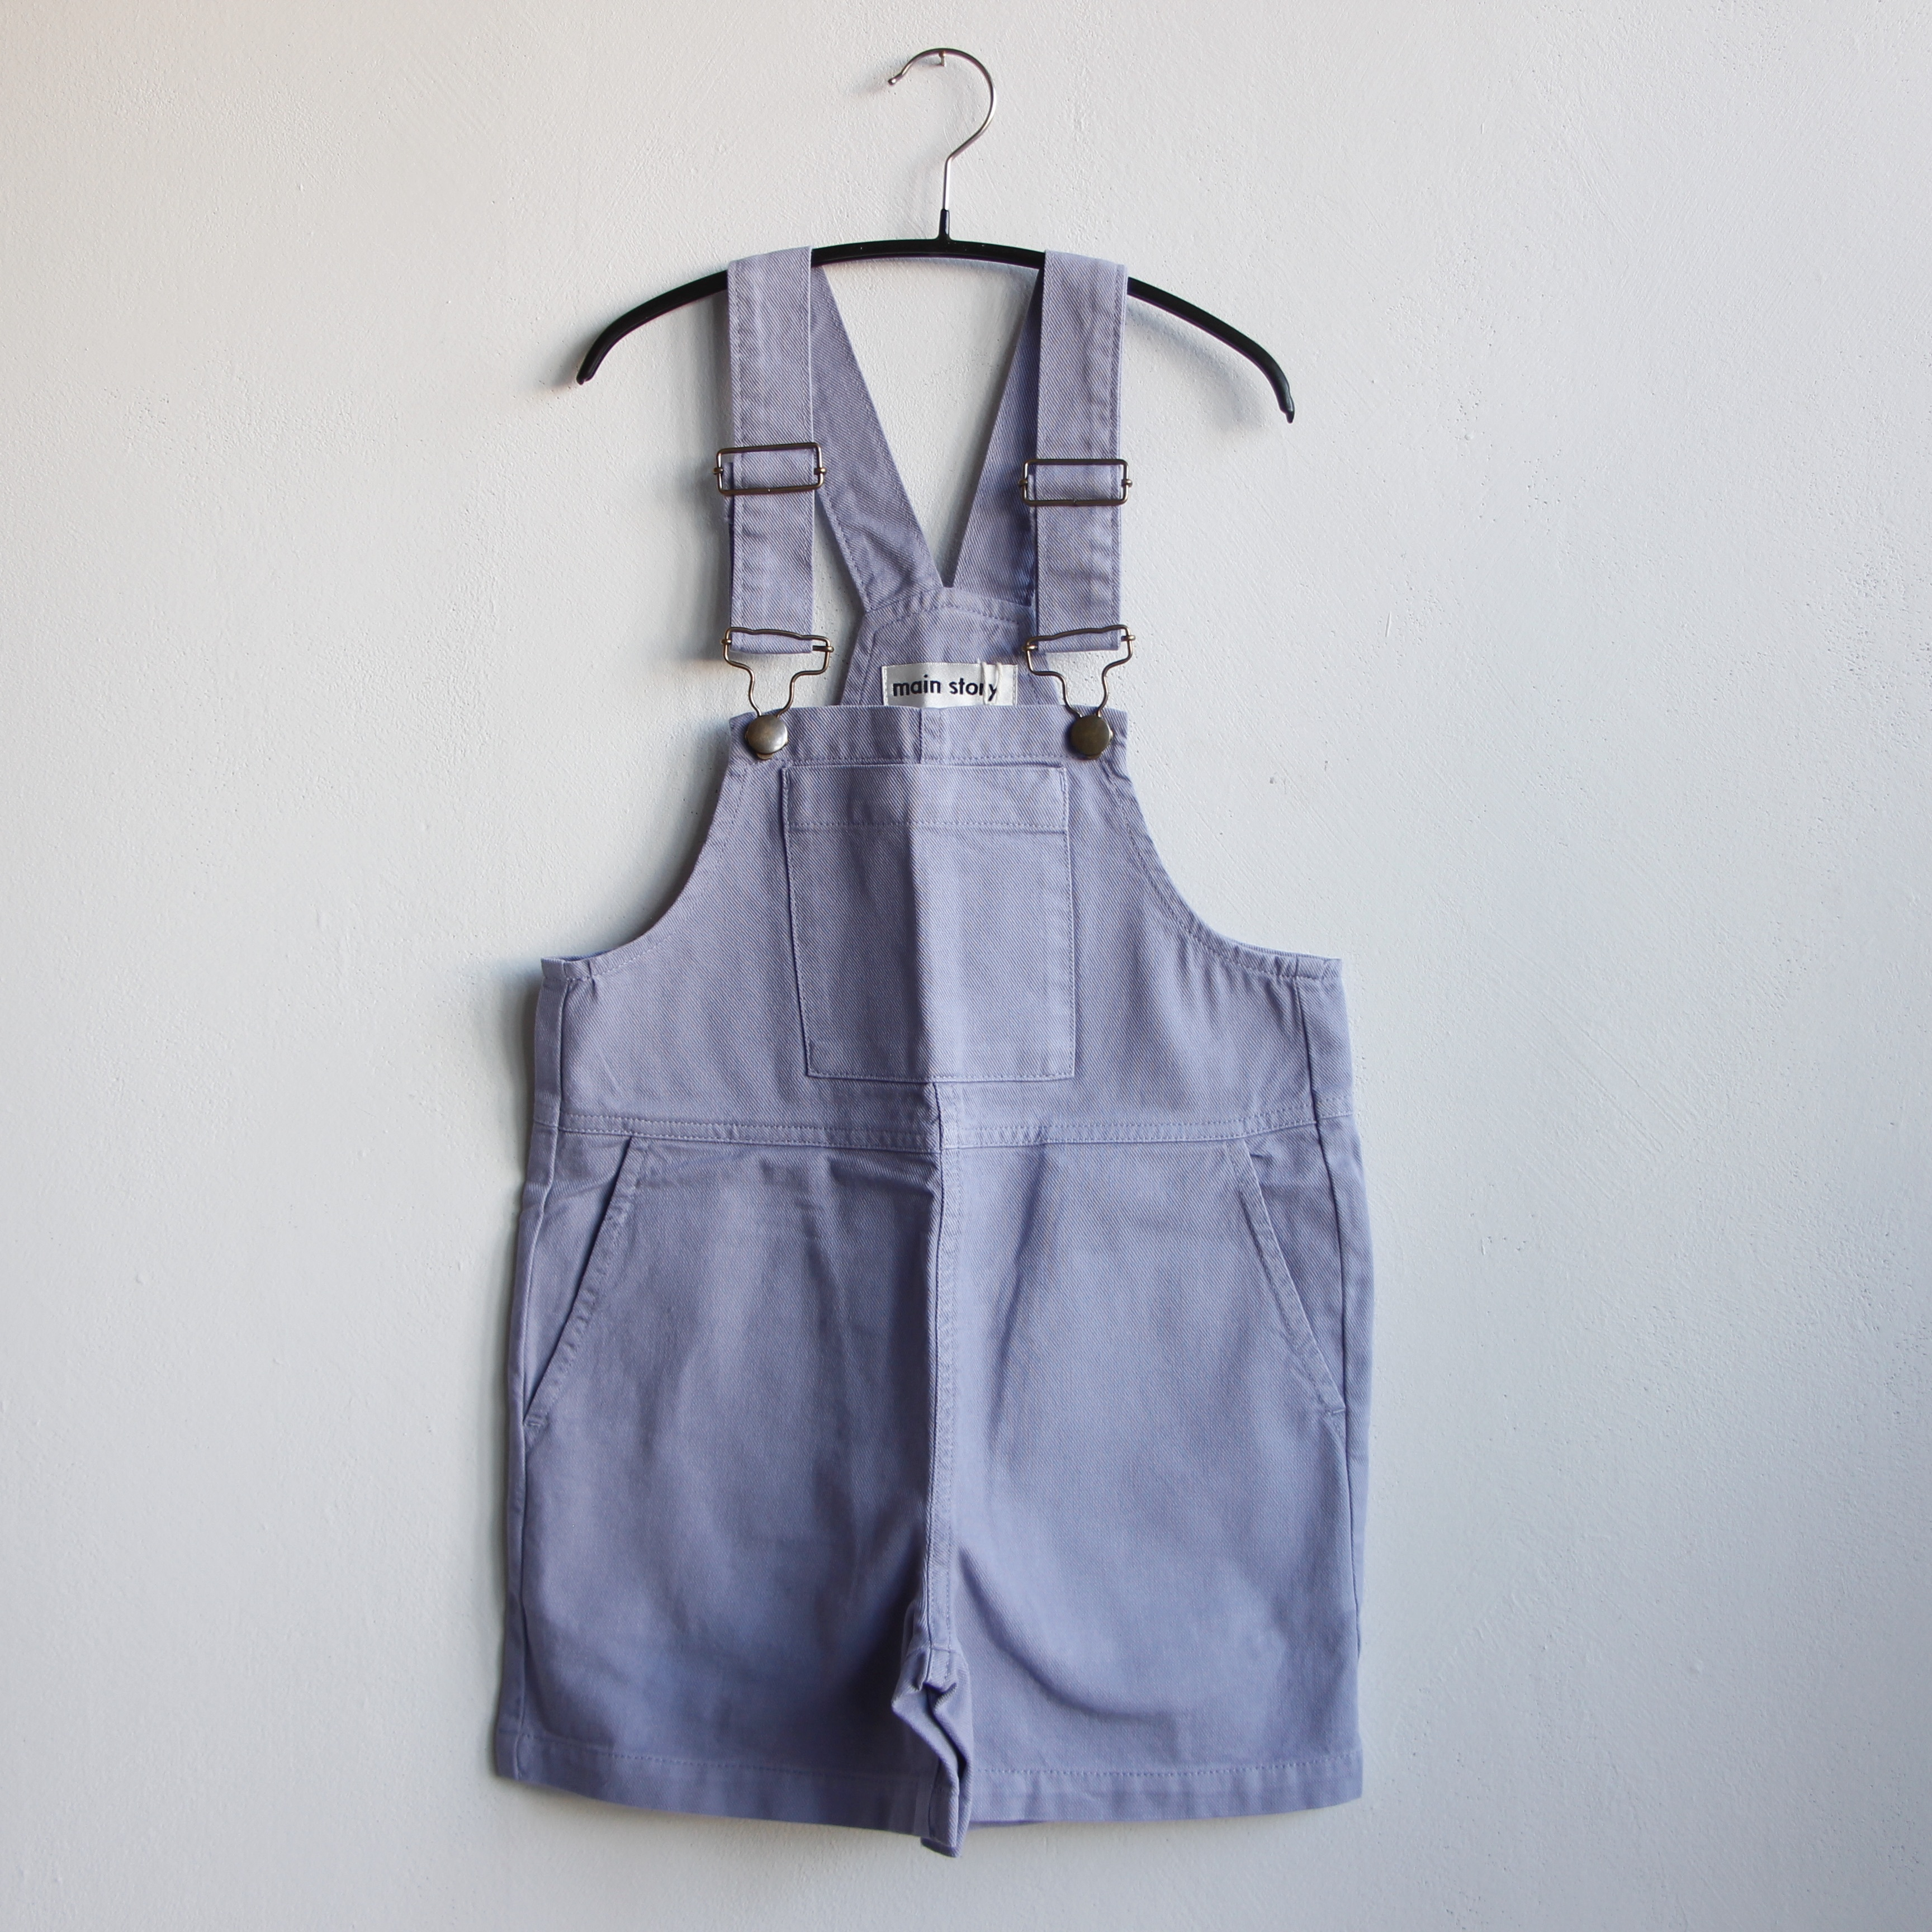 《main story 2021SS》Short Dungaree / Eventide